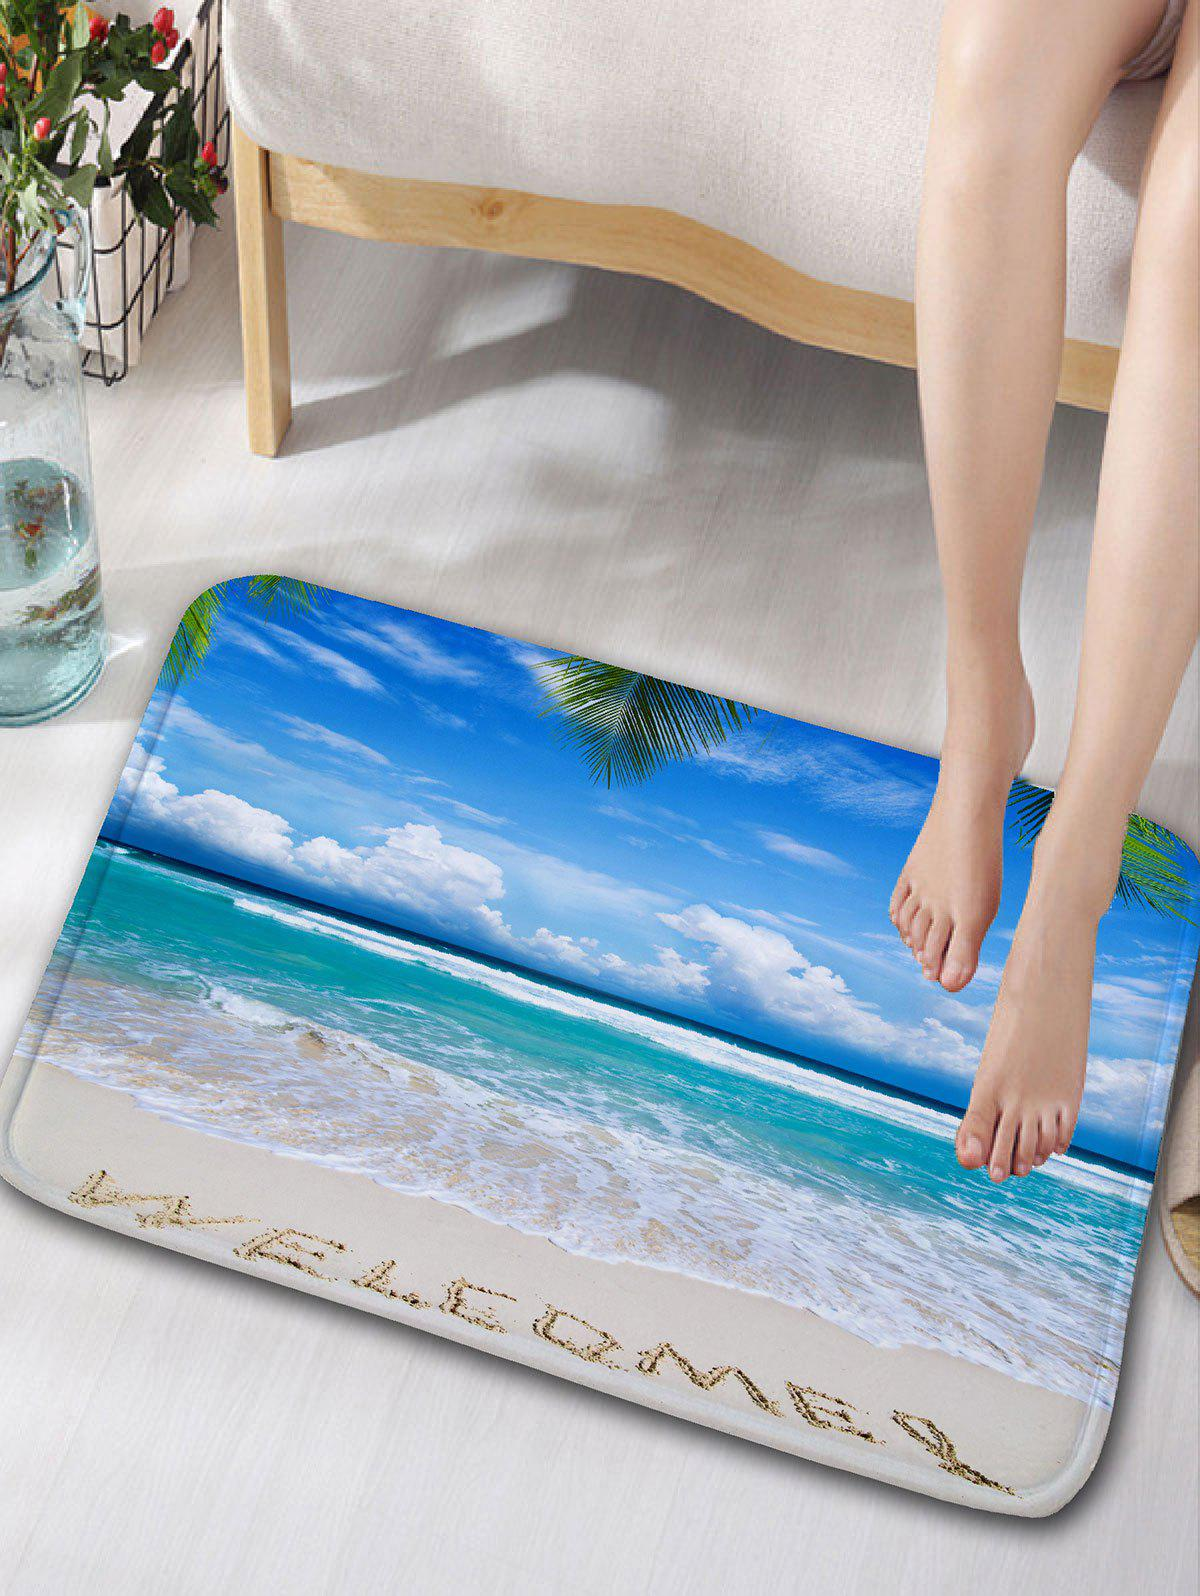 Beach Words Print Flannel Skid Resistant Bath RugHOME<br><br>Color: LAKE BLUE; Products Type: Bath rugs; Materials: Flannel; Pattern: Letter; Style: Beach Style; Shape: Rectangle; Size: W16inch*L24inch; Package Contents: 1 x Rug;